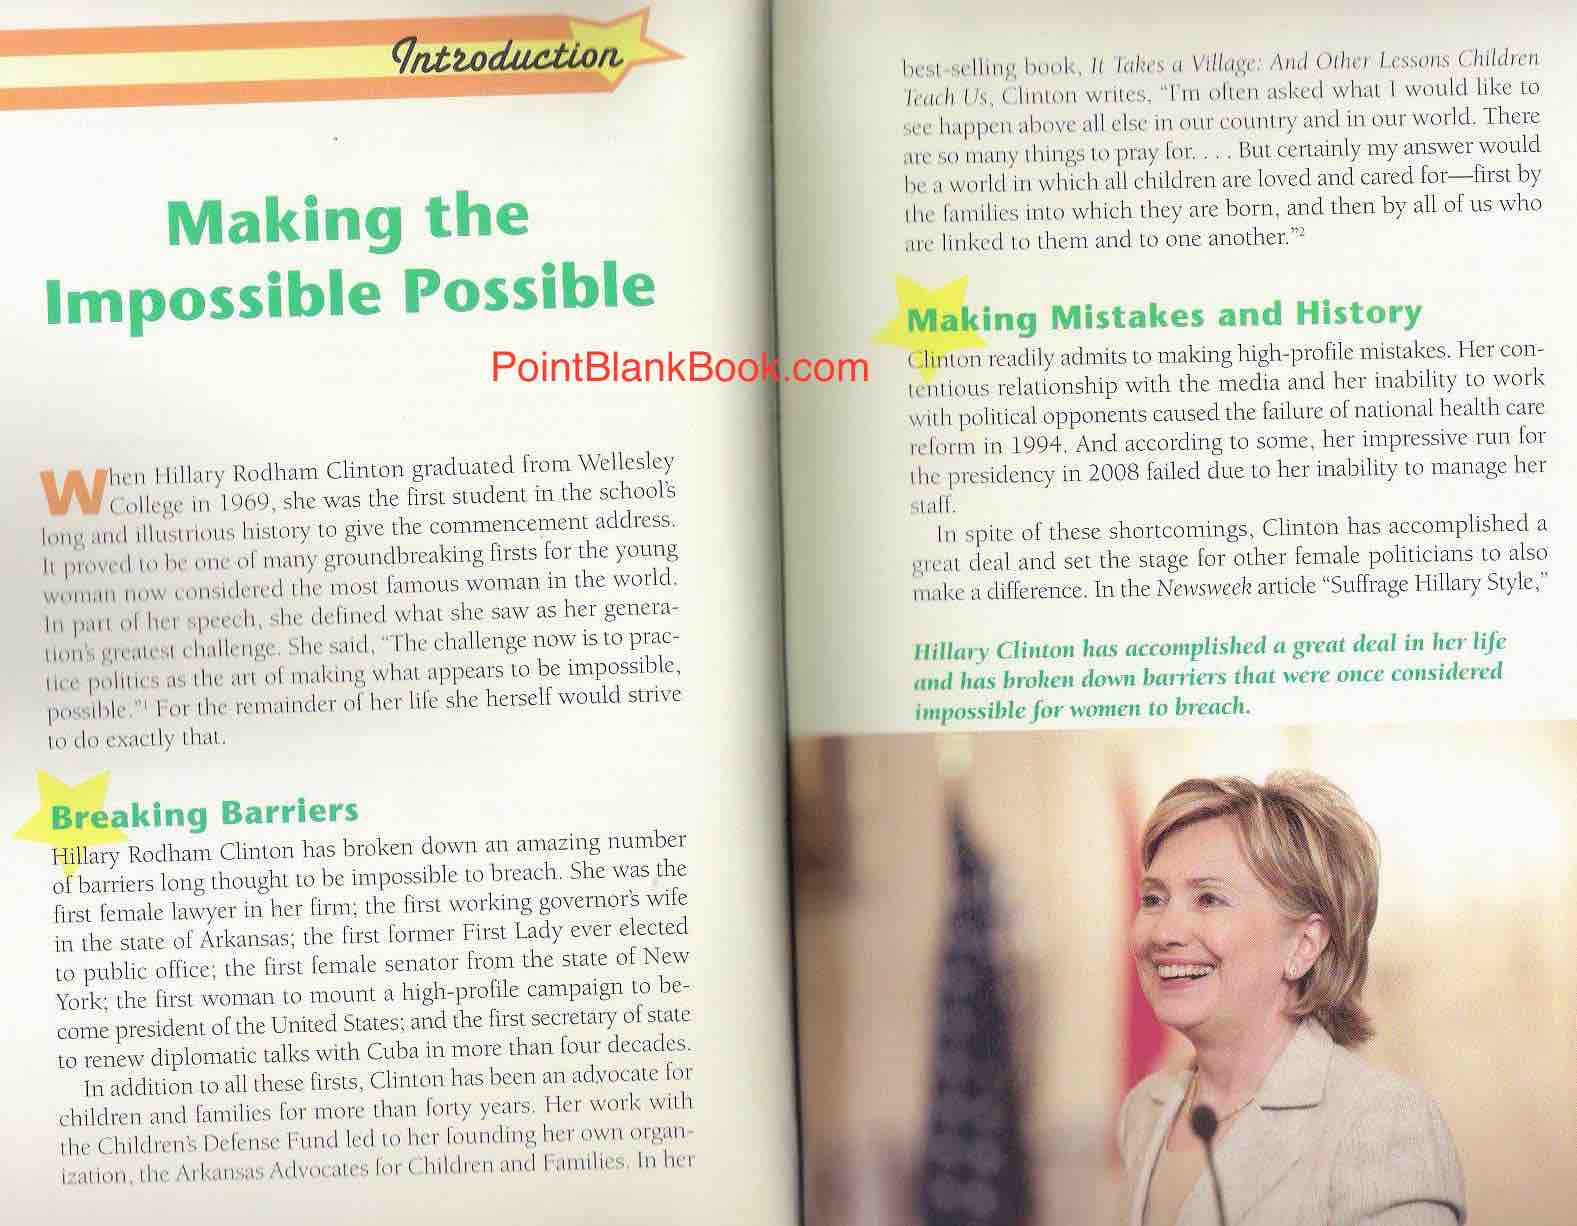 Introduction to People in the News: Hillary Clinton.